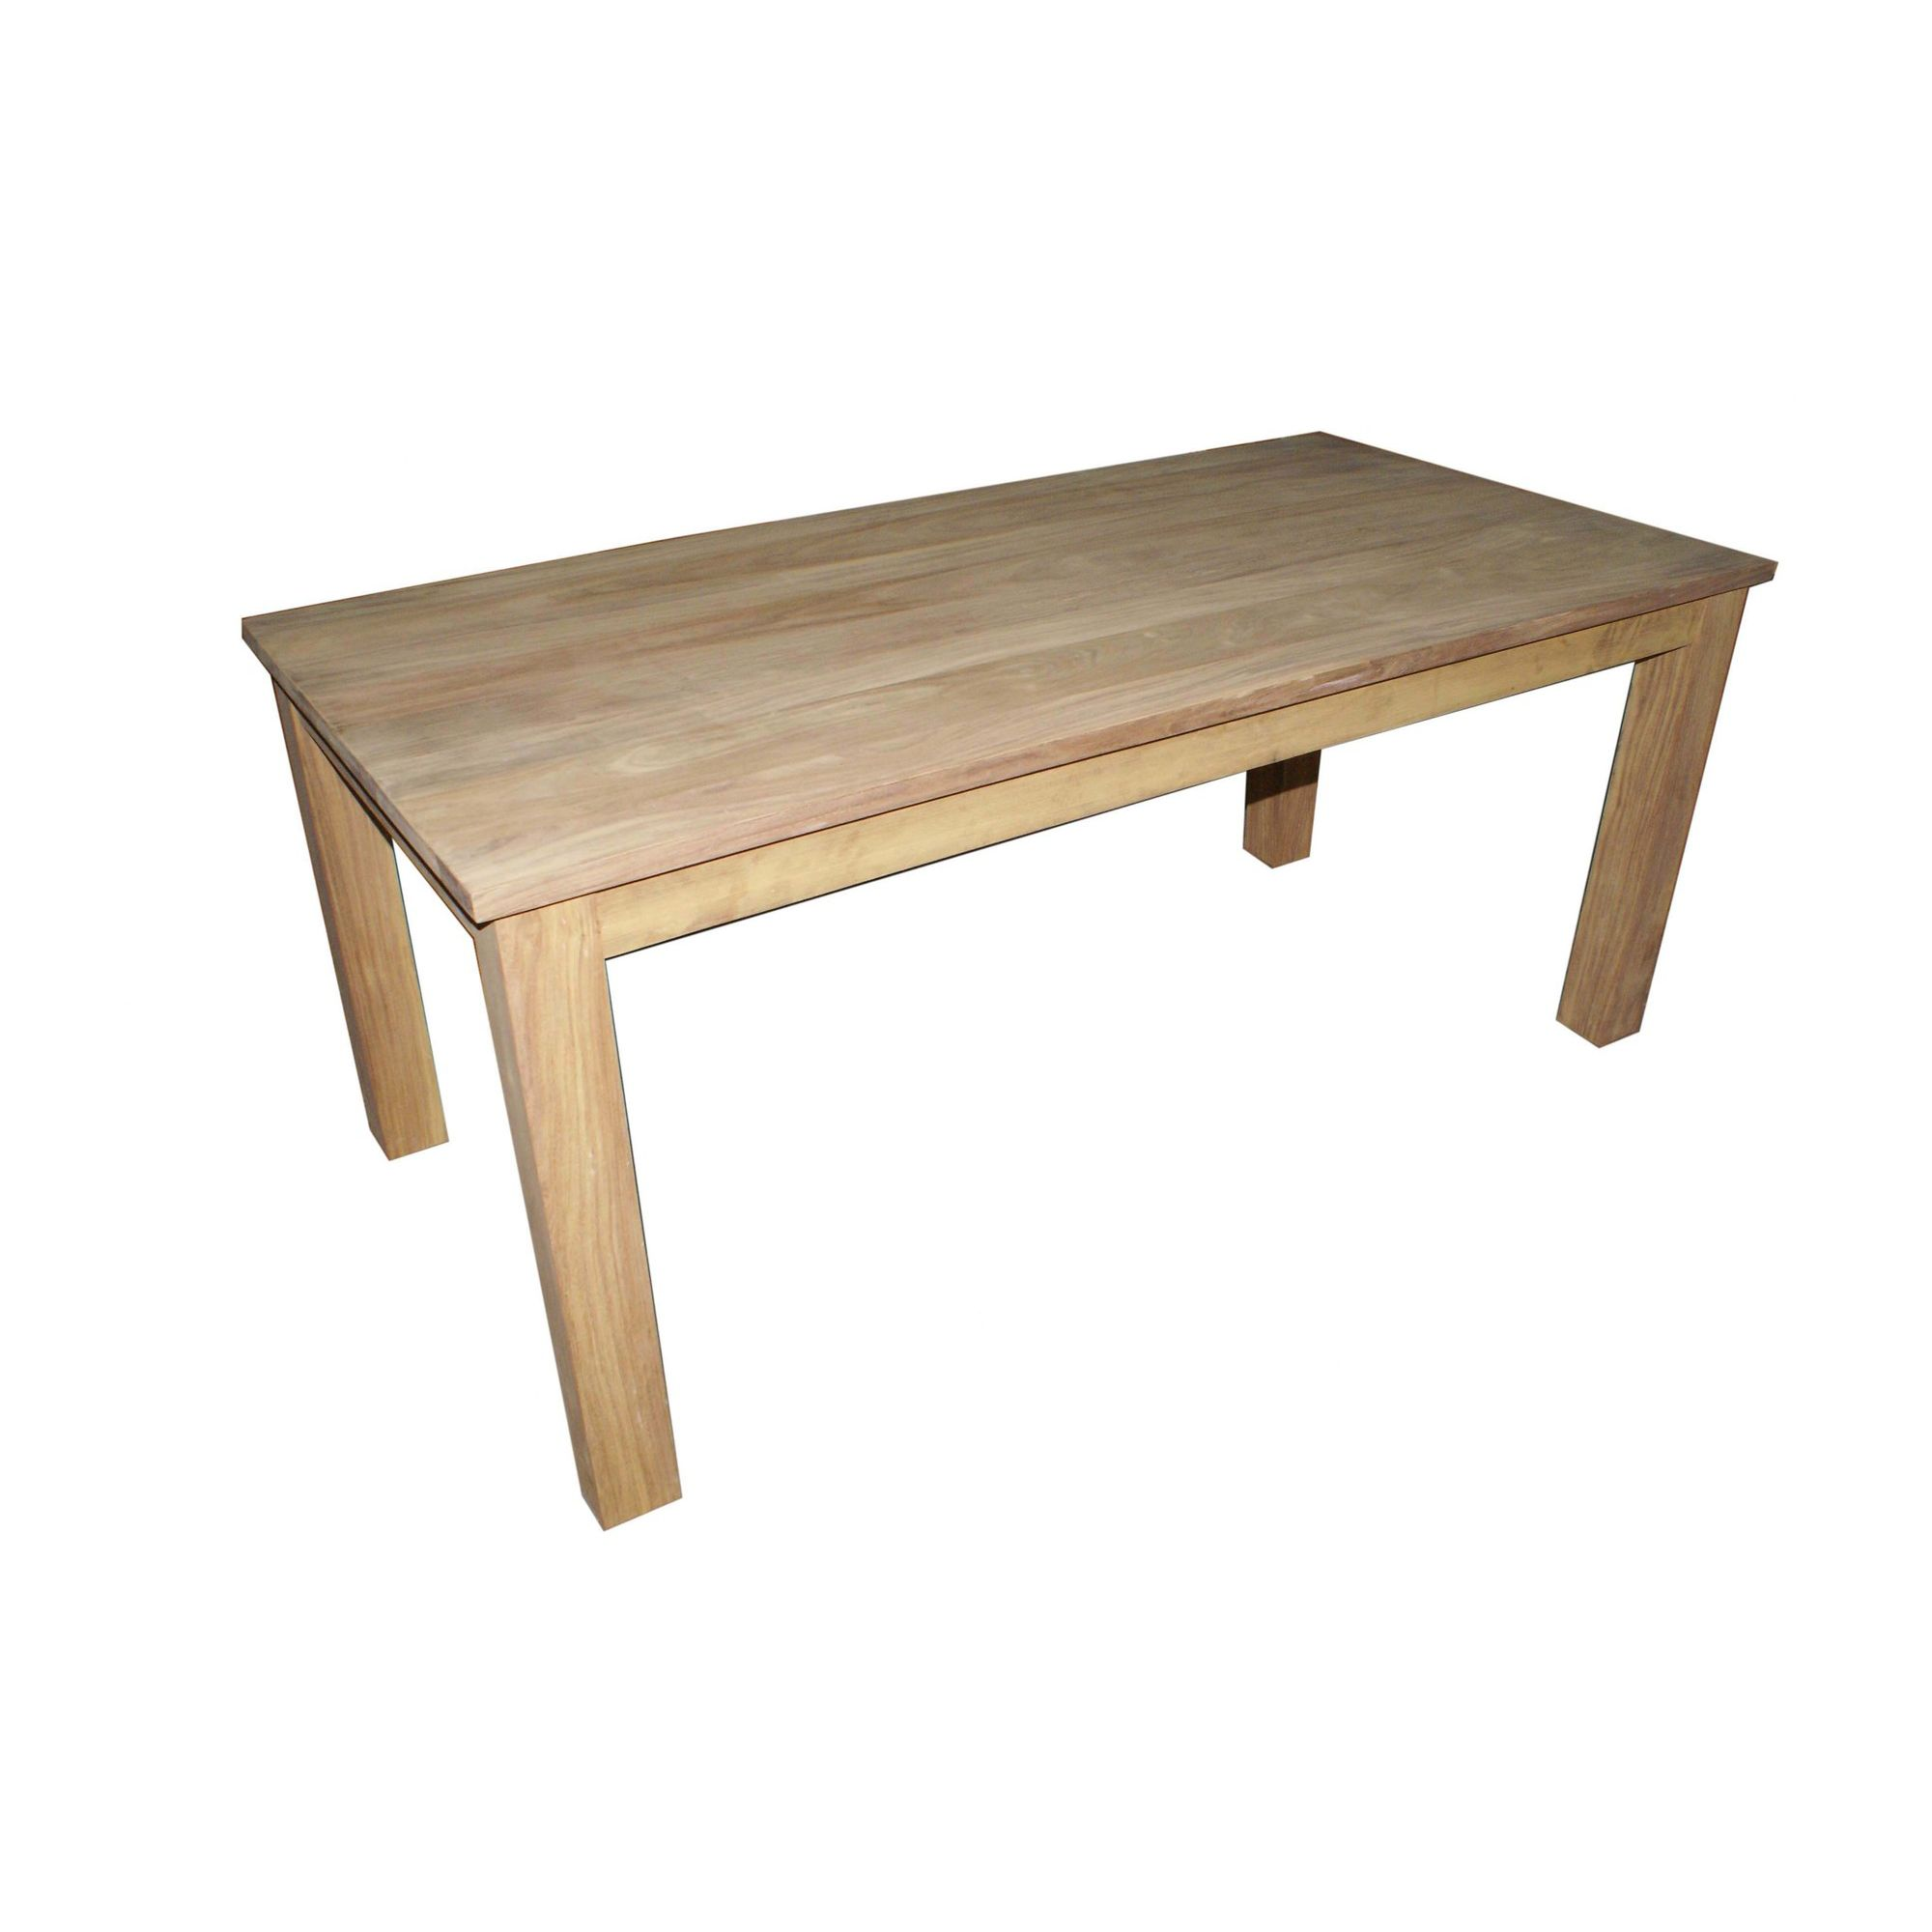 Wiseaction Lingfield Fixed Top Solid Oak Dining Table - 180cm